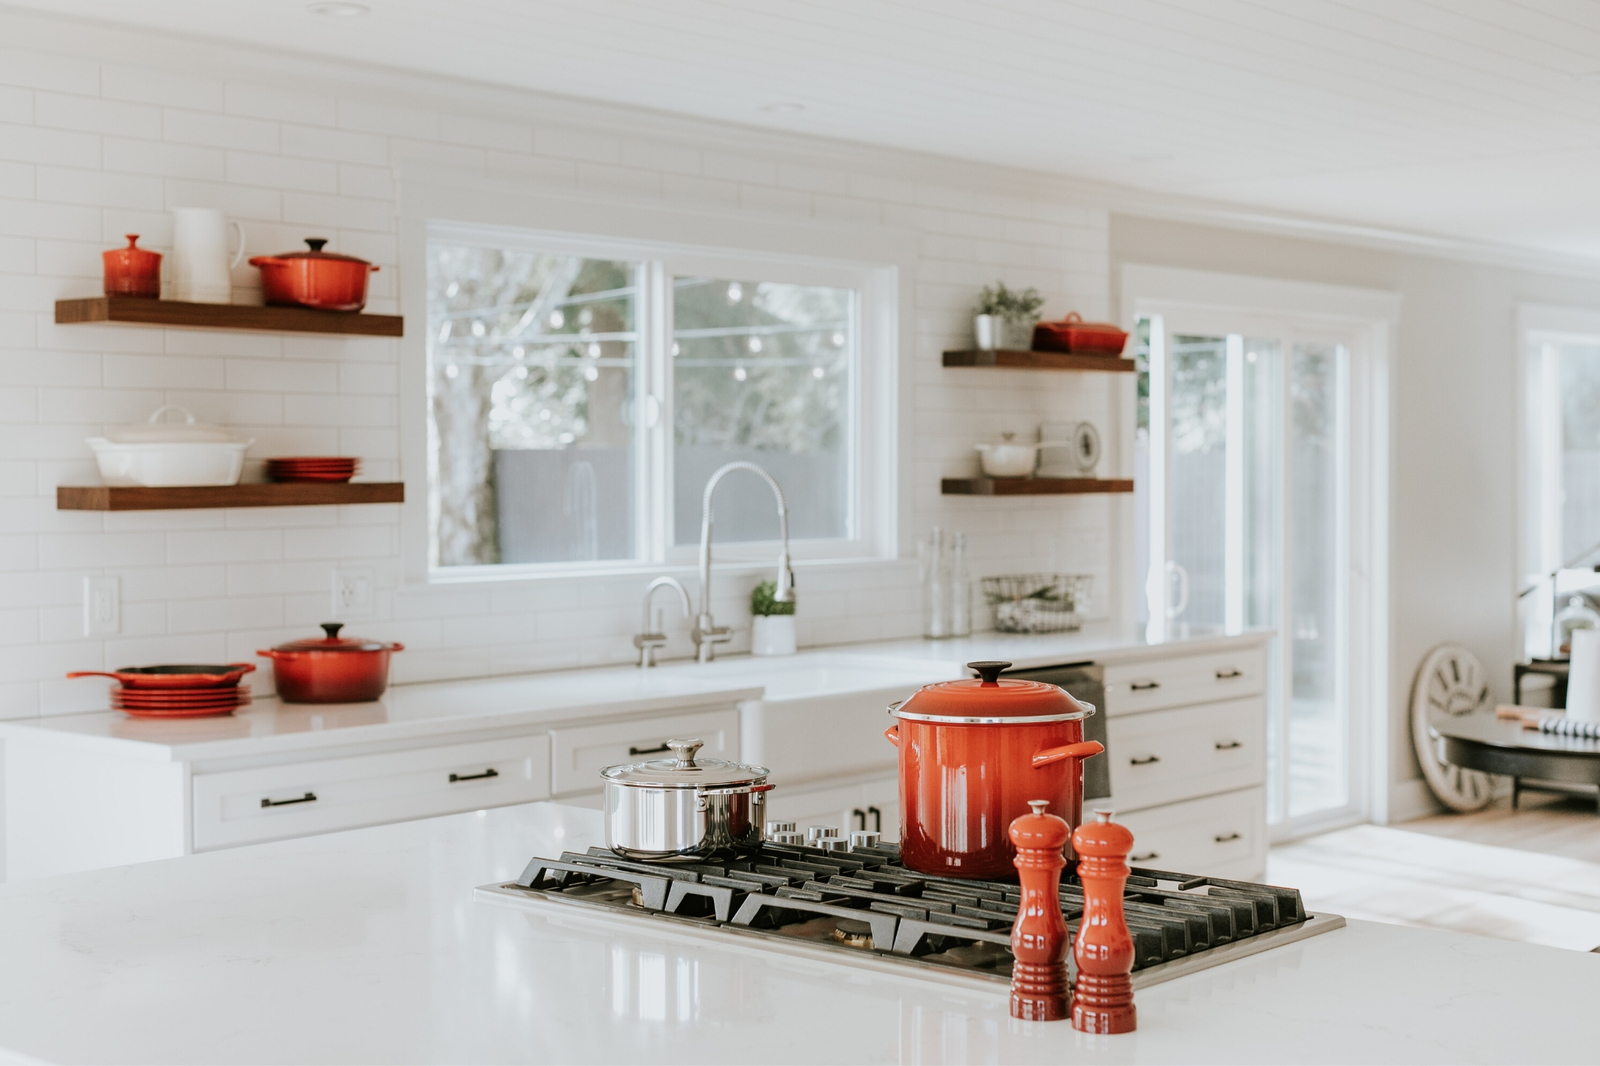 foley homes kitchen features